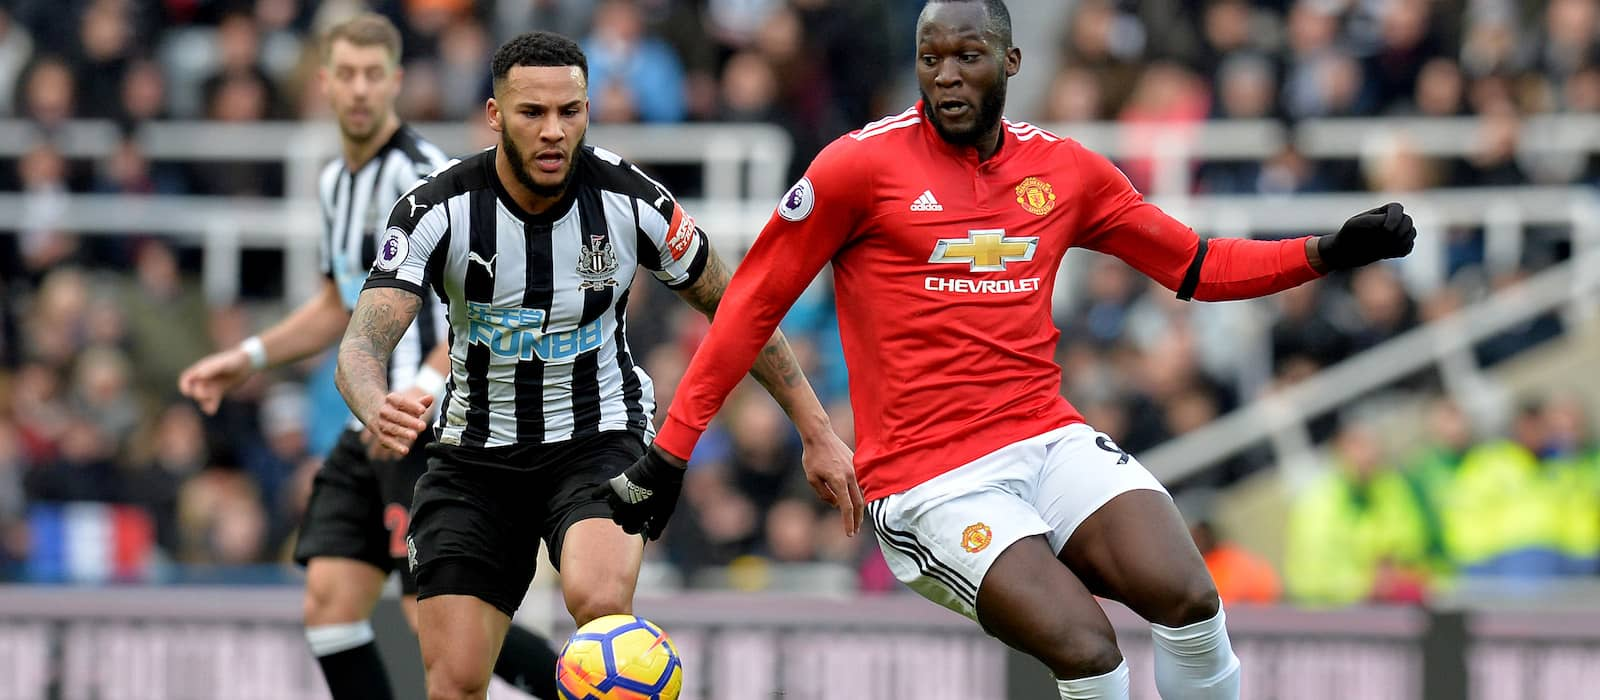 Manchester United fans hail Romelu Lukaku's performance vs Newcastle